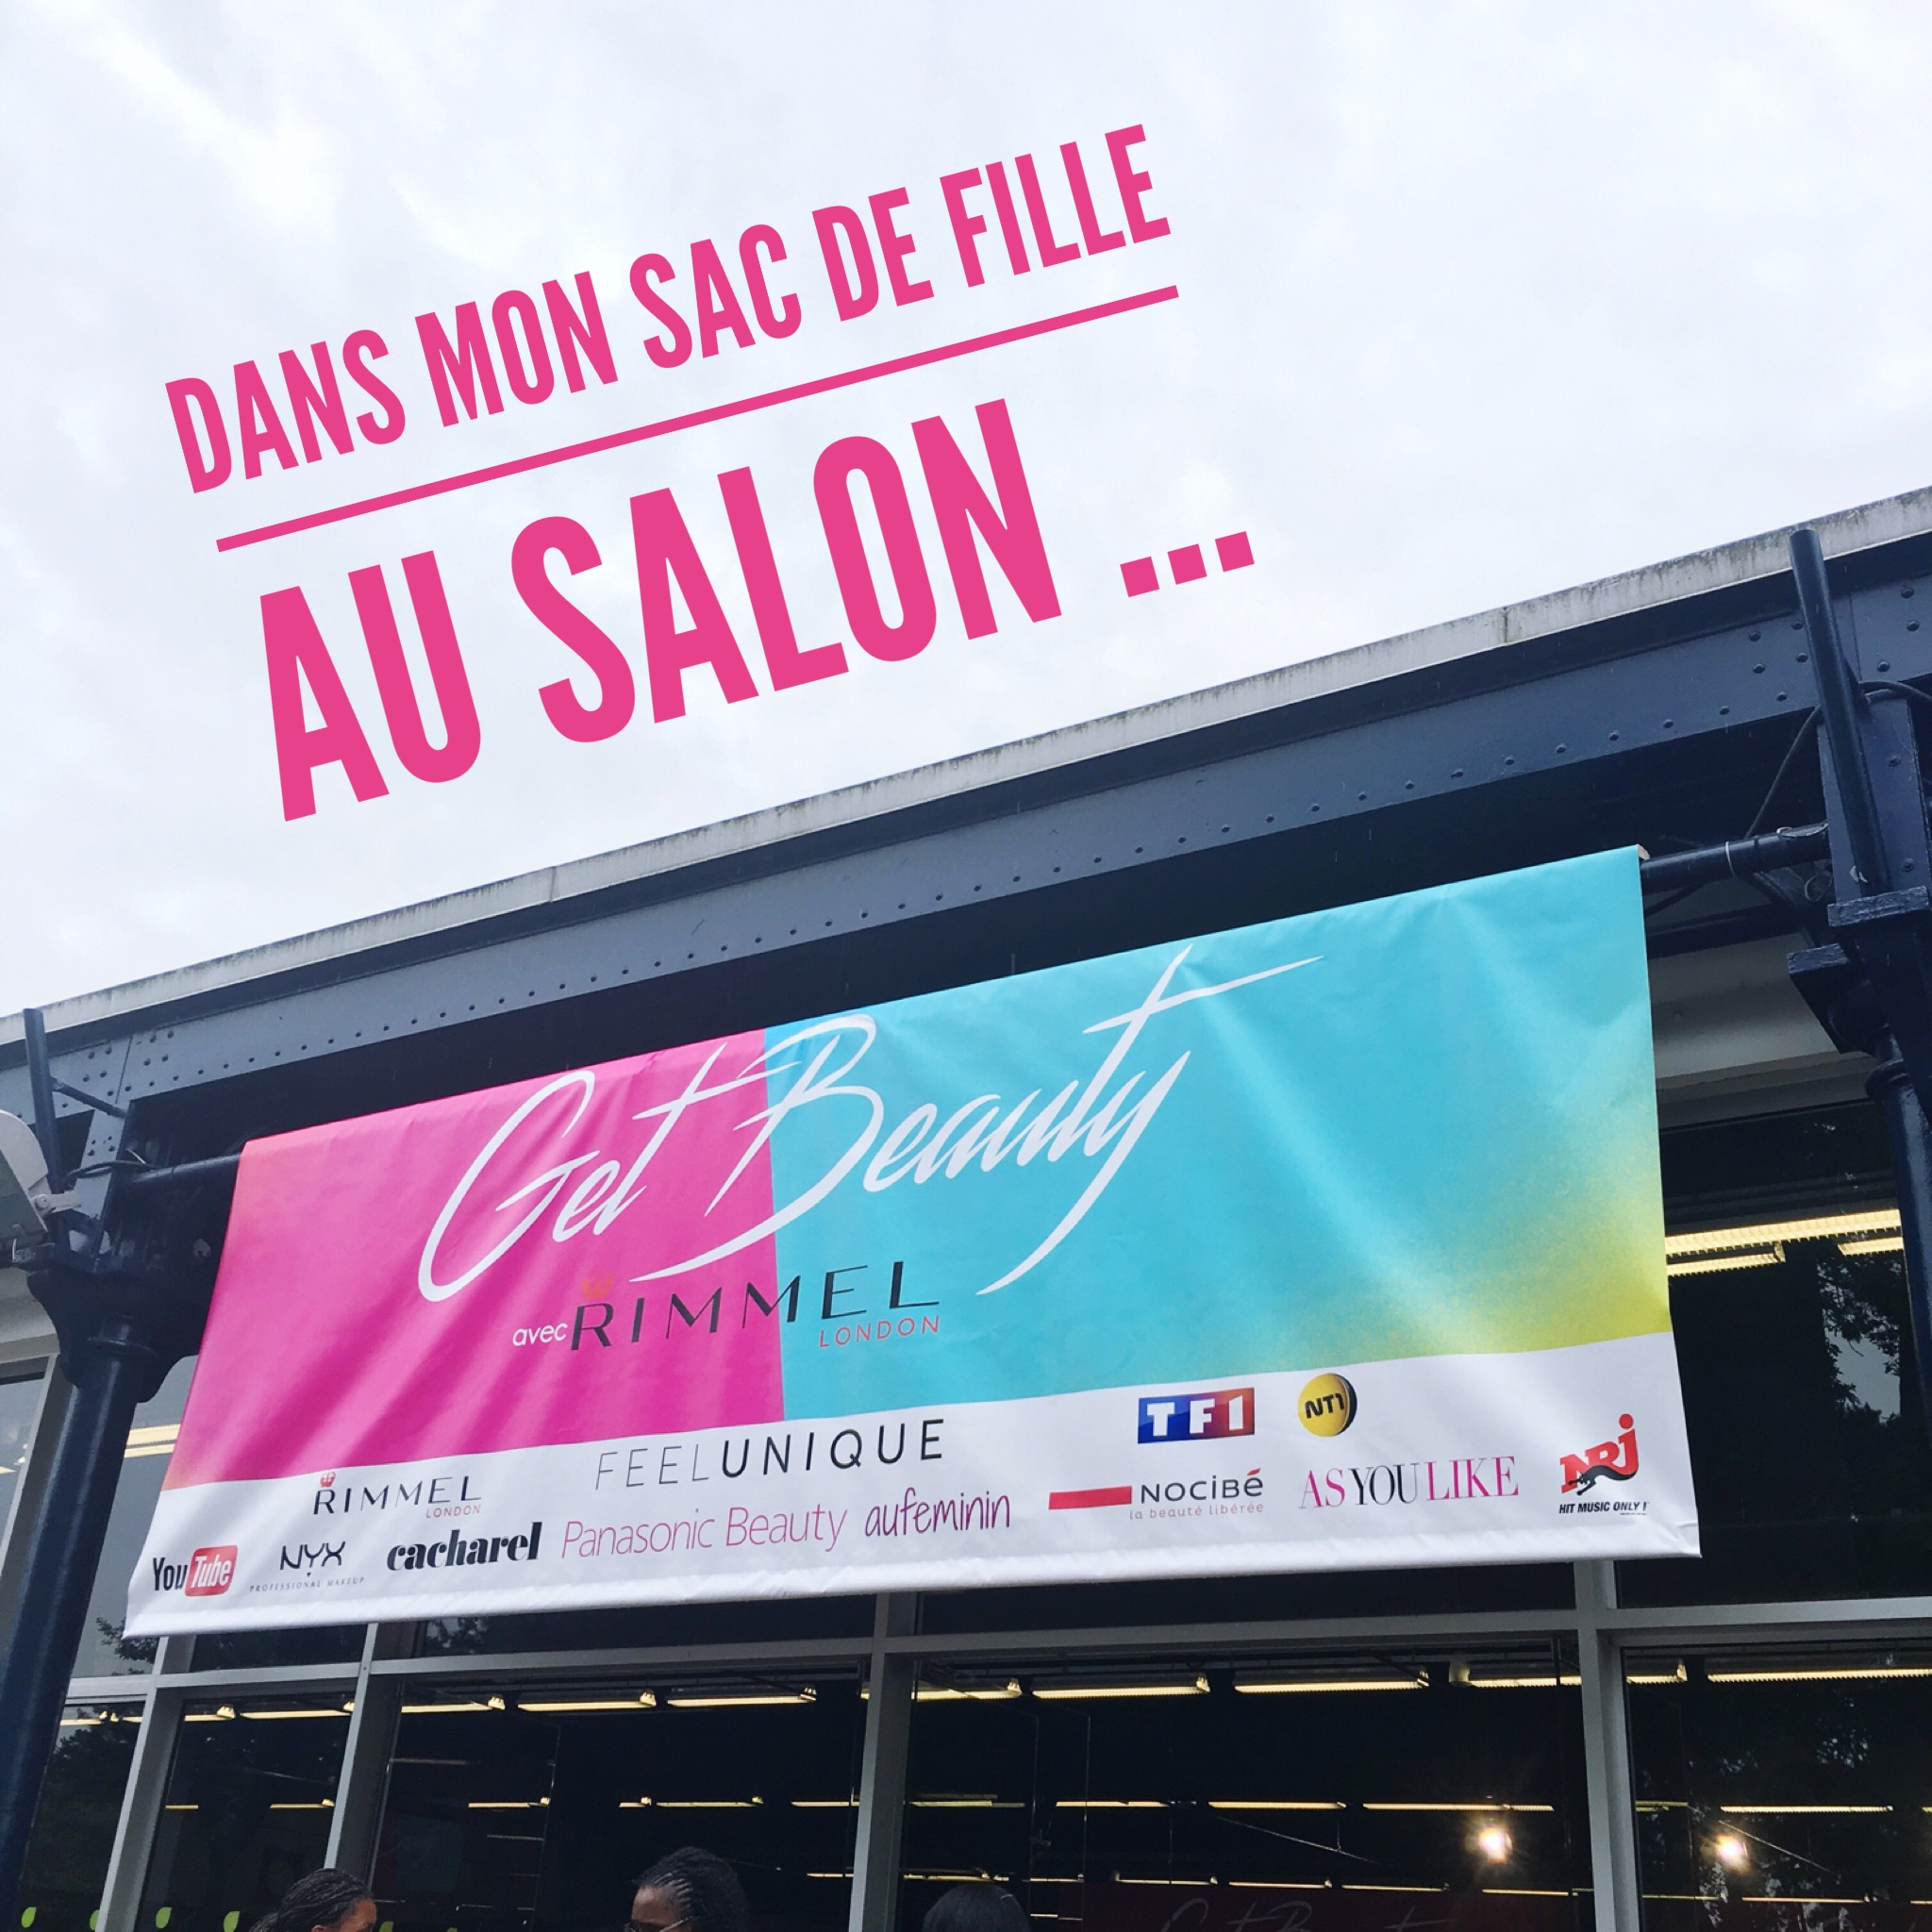 Le salon get beauty j 39 y tais dans mon sac de fille for Salon youtubeuse